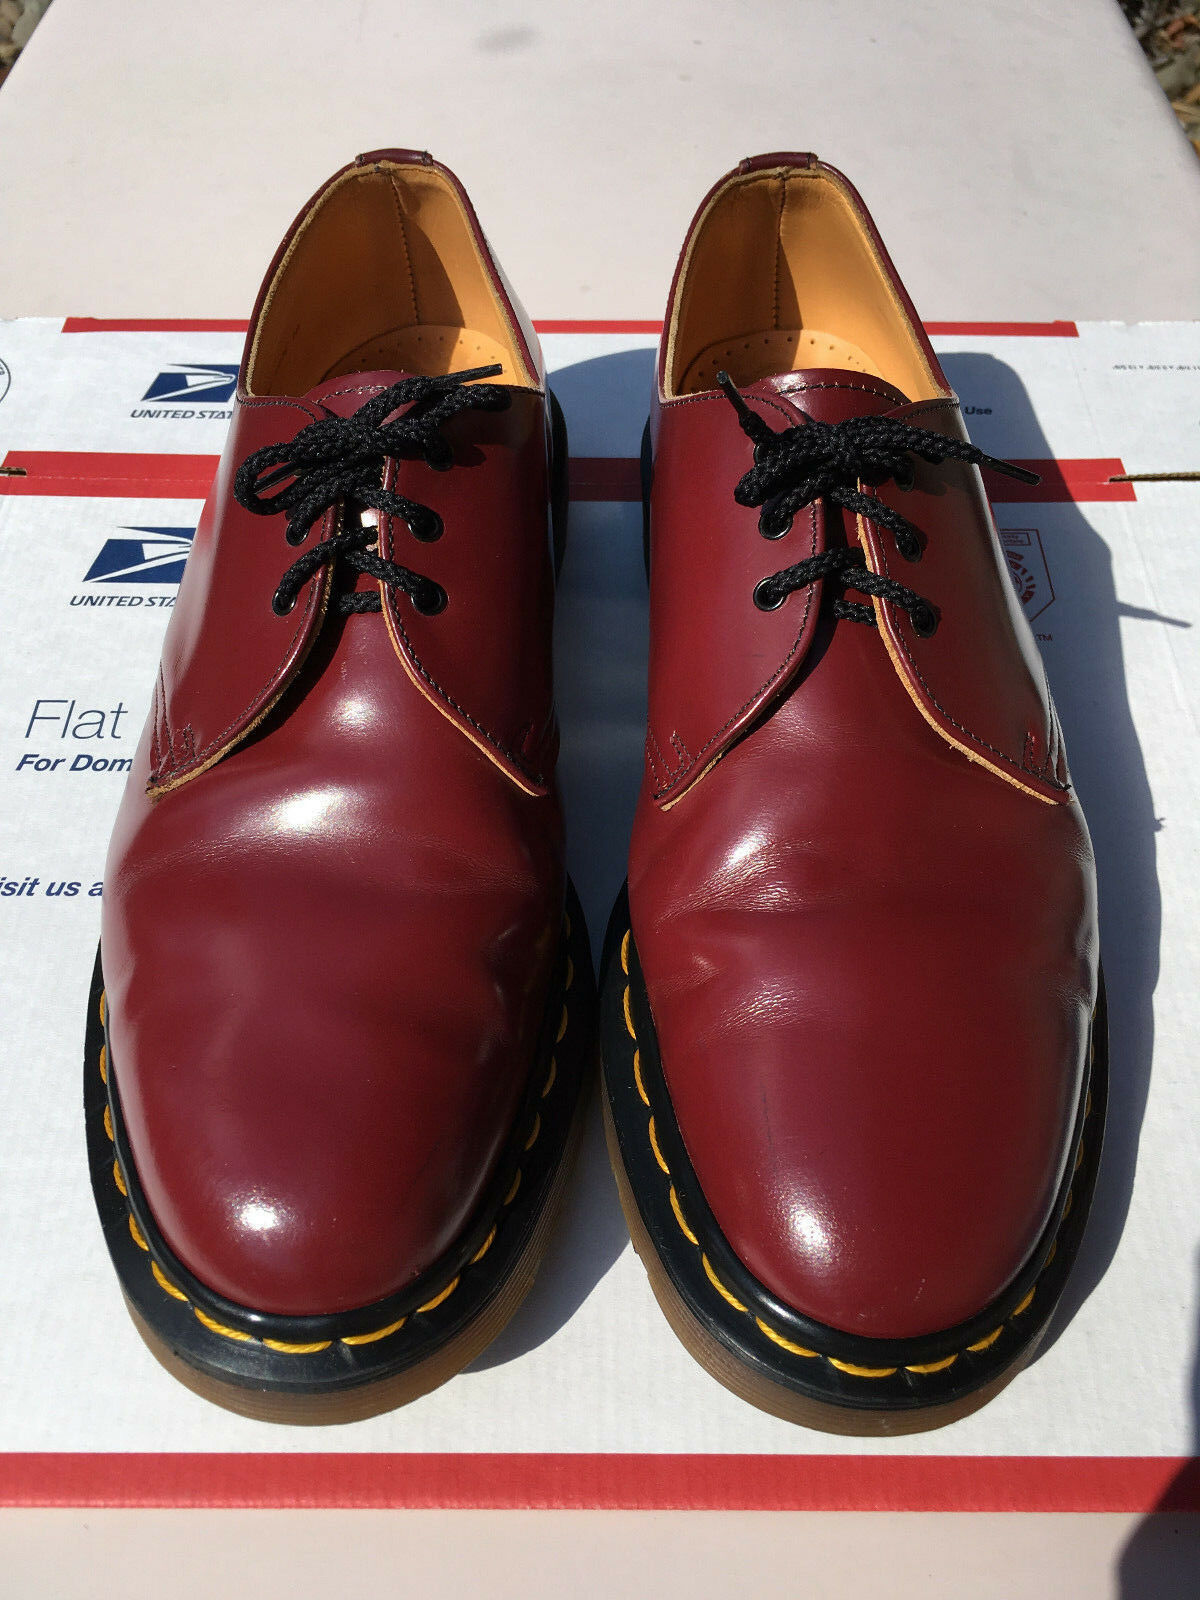 90's Vintage Dr. Martens 11 oxblood oxblood 11 3-eye shoe cherry ROT oxford gibson 1461 doc 604408